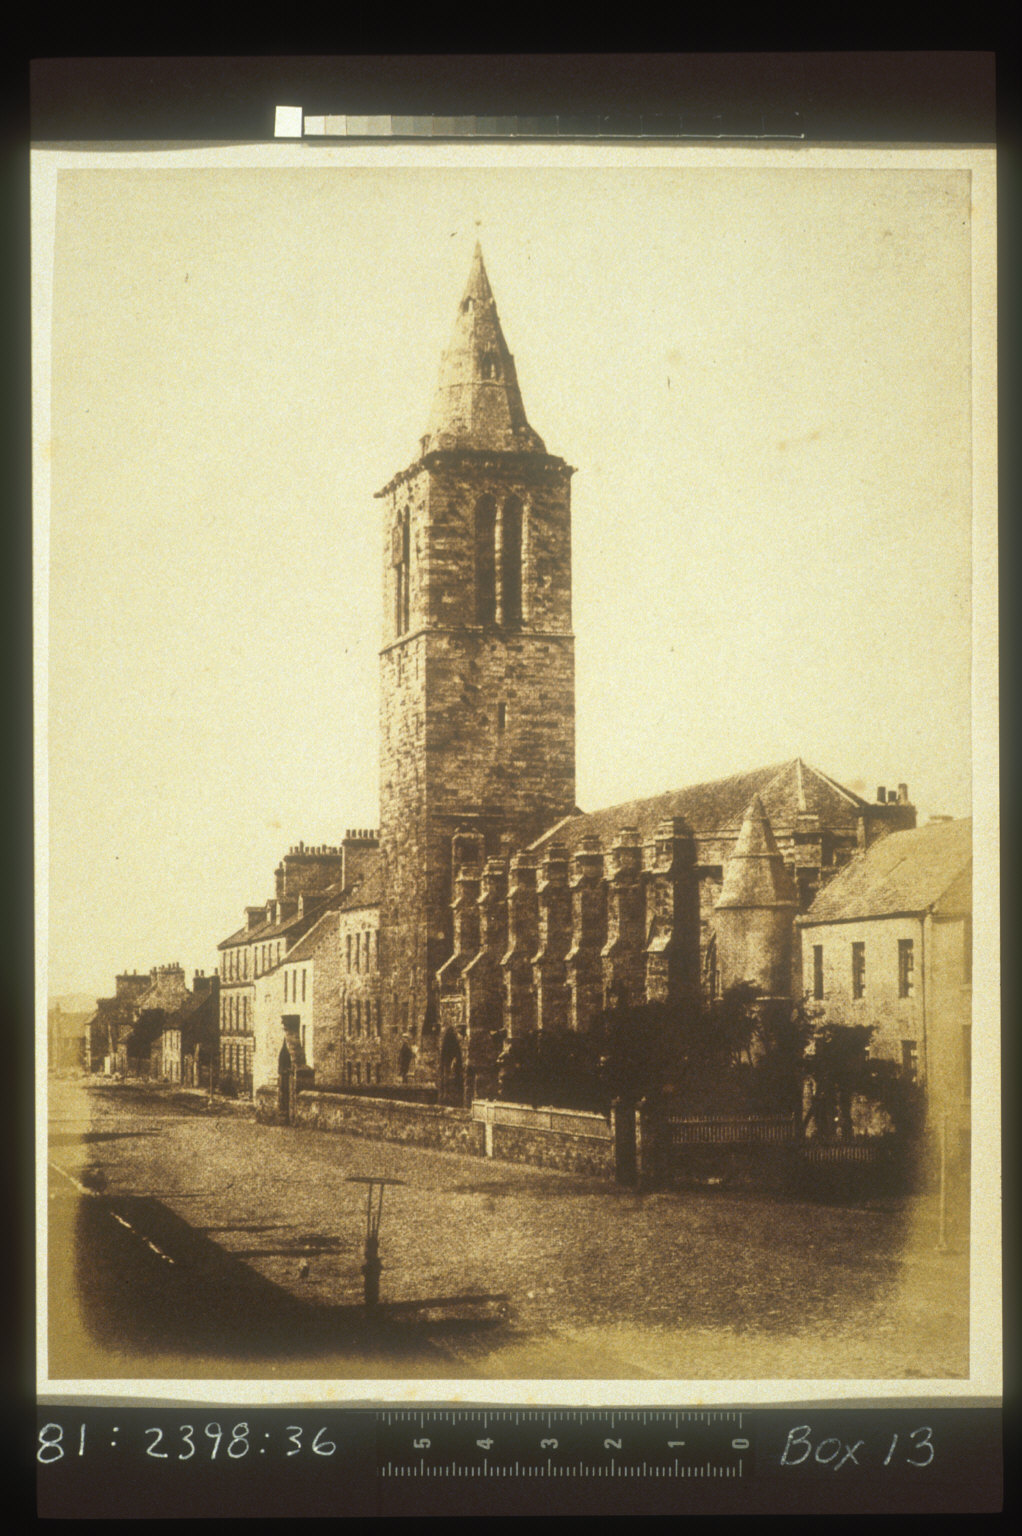 St. Andrews - (The College Church of St. Salvator)